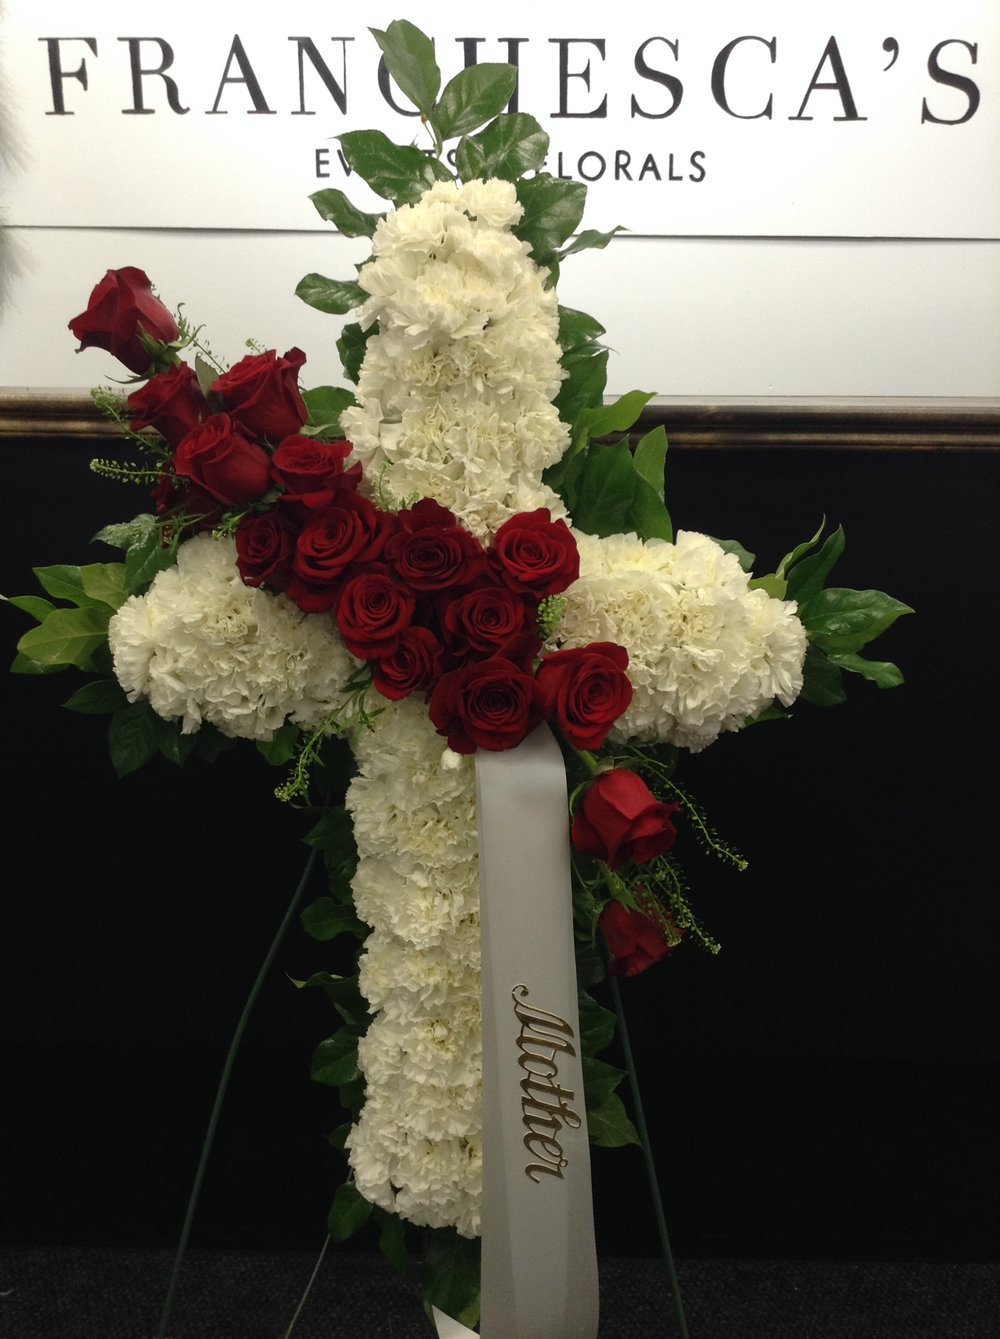 Funeral cross franchescas events floral funeral cross izmirmasajfo